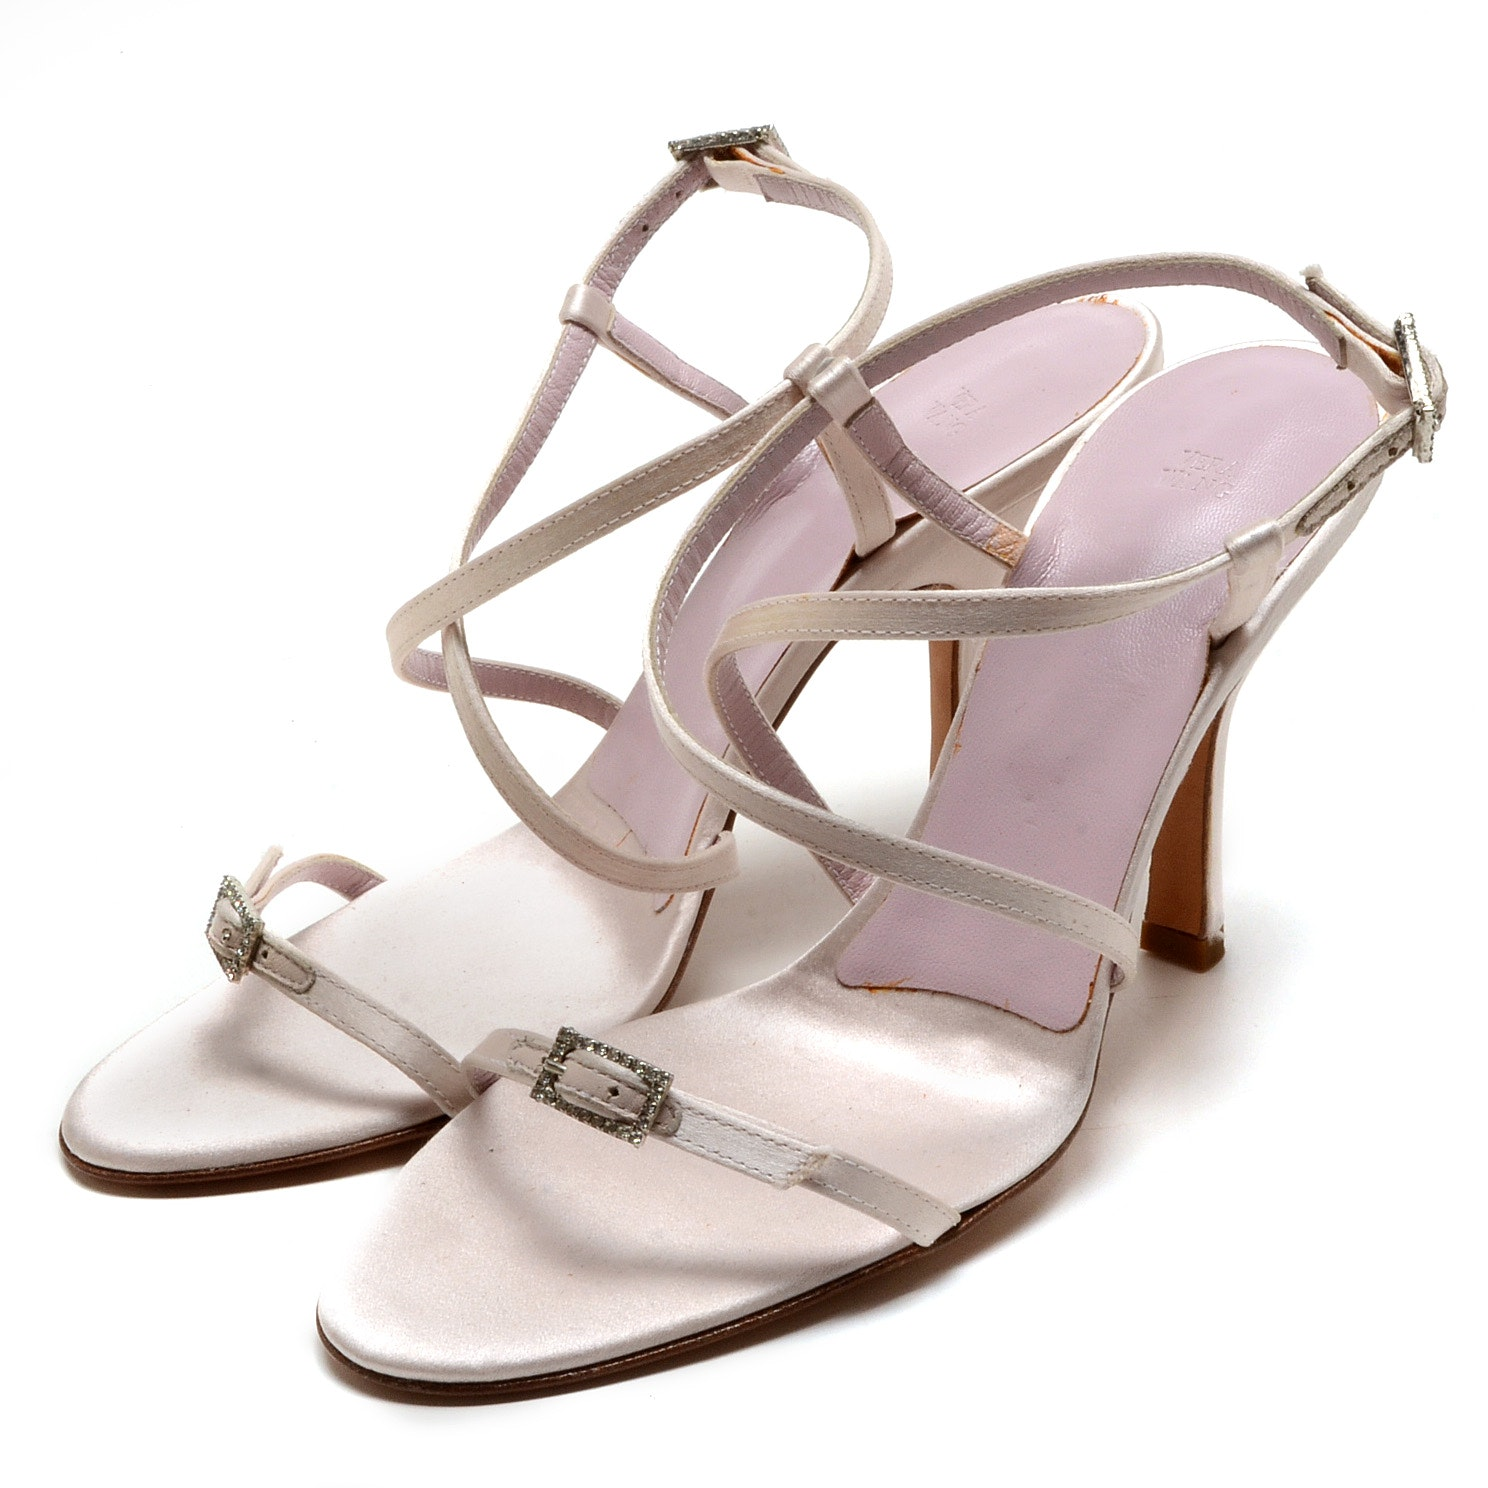 Vera Wang Strappy Dress Sandals in Silky Champagne Lavender Satin and Leather with Rhinestone Encrusted Buckles